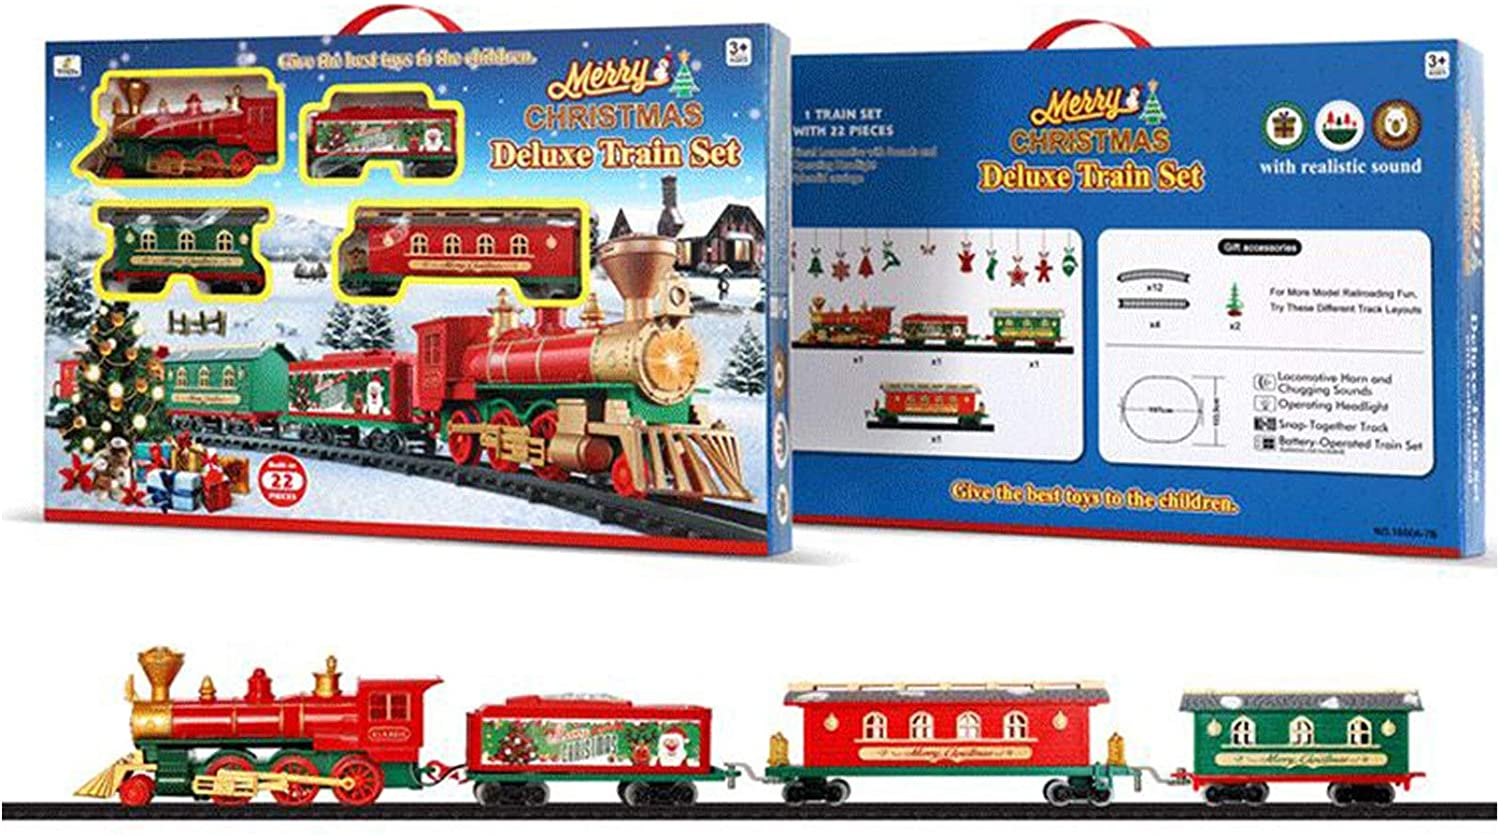 Fullfun Christmas Train Set Electric Railway Train Toy with Realistic Sound and Light 2 AA Battery Operated Include Carriages and Tracks Racing Road for Kids Xmas Train Decorations (B)